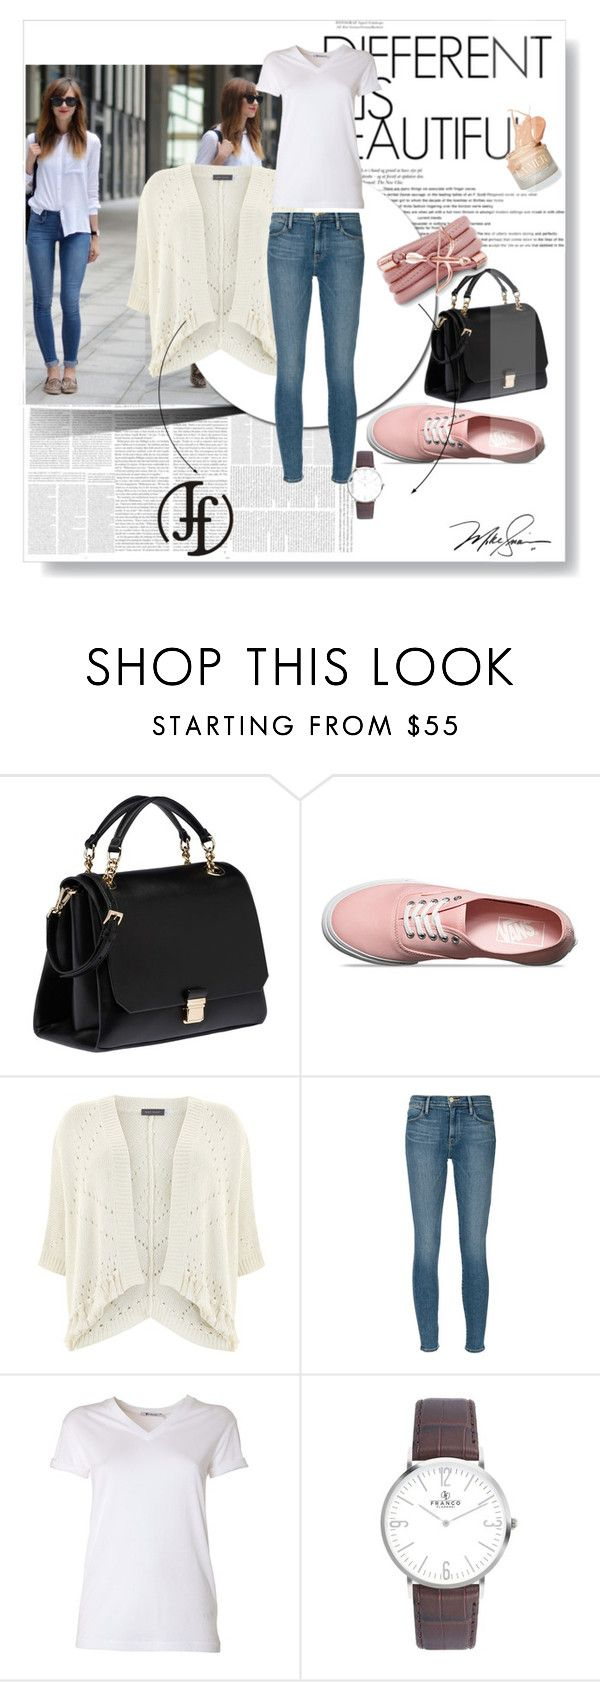 """Franco Florenzi"" by gold-phoenix ❤ liked on Polyvore featuring Miu Miu, Vans, Mint Velvet, Frame Denim, T By Alexander Wang and Monza"